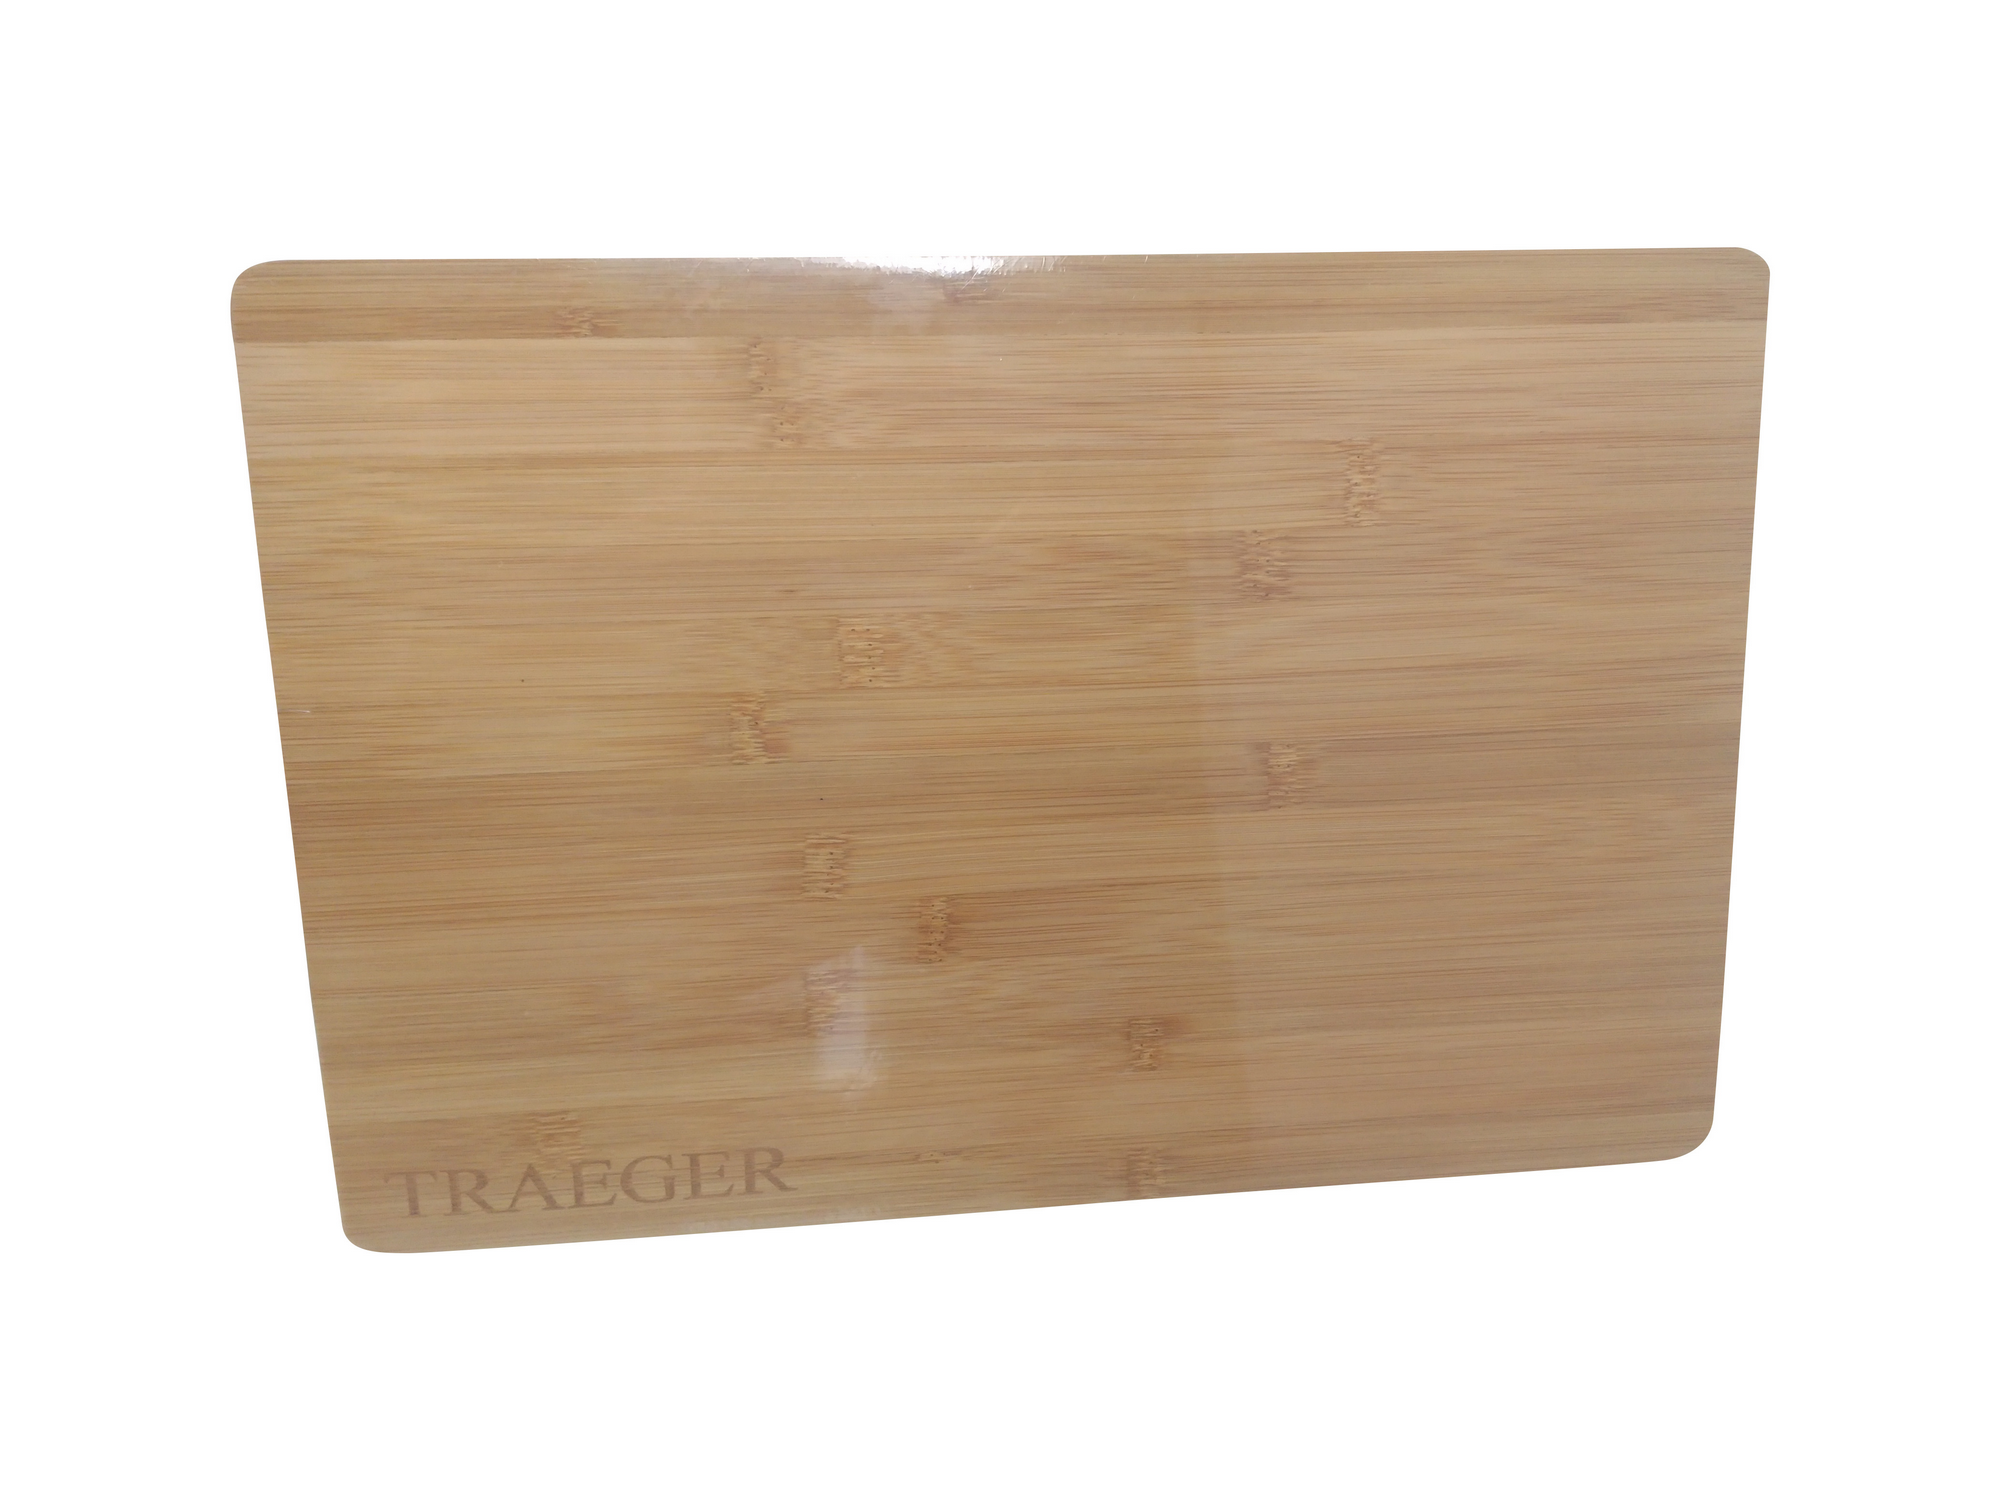 Traeger Magnetic Bamboo Cutting Board, BAC406